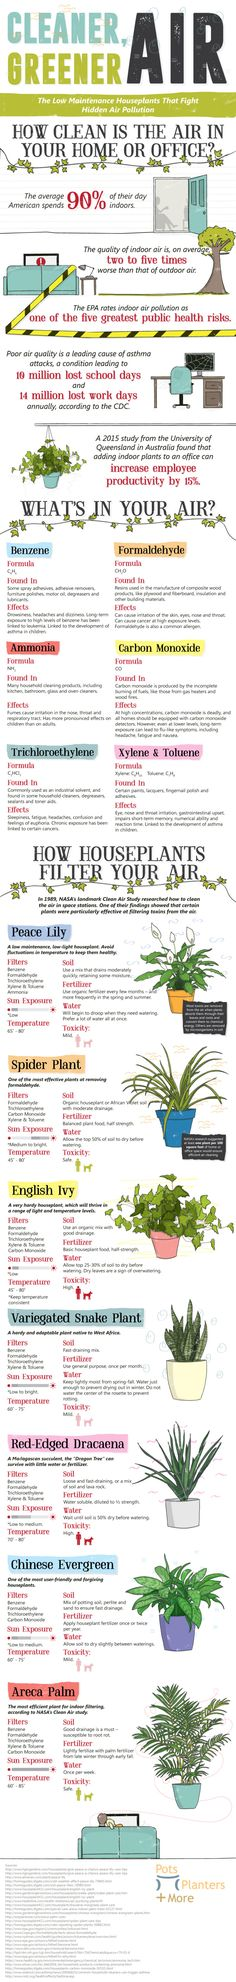 The Low Maintenance Houseplants That Fight Hidden Air Pollution